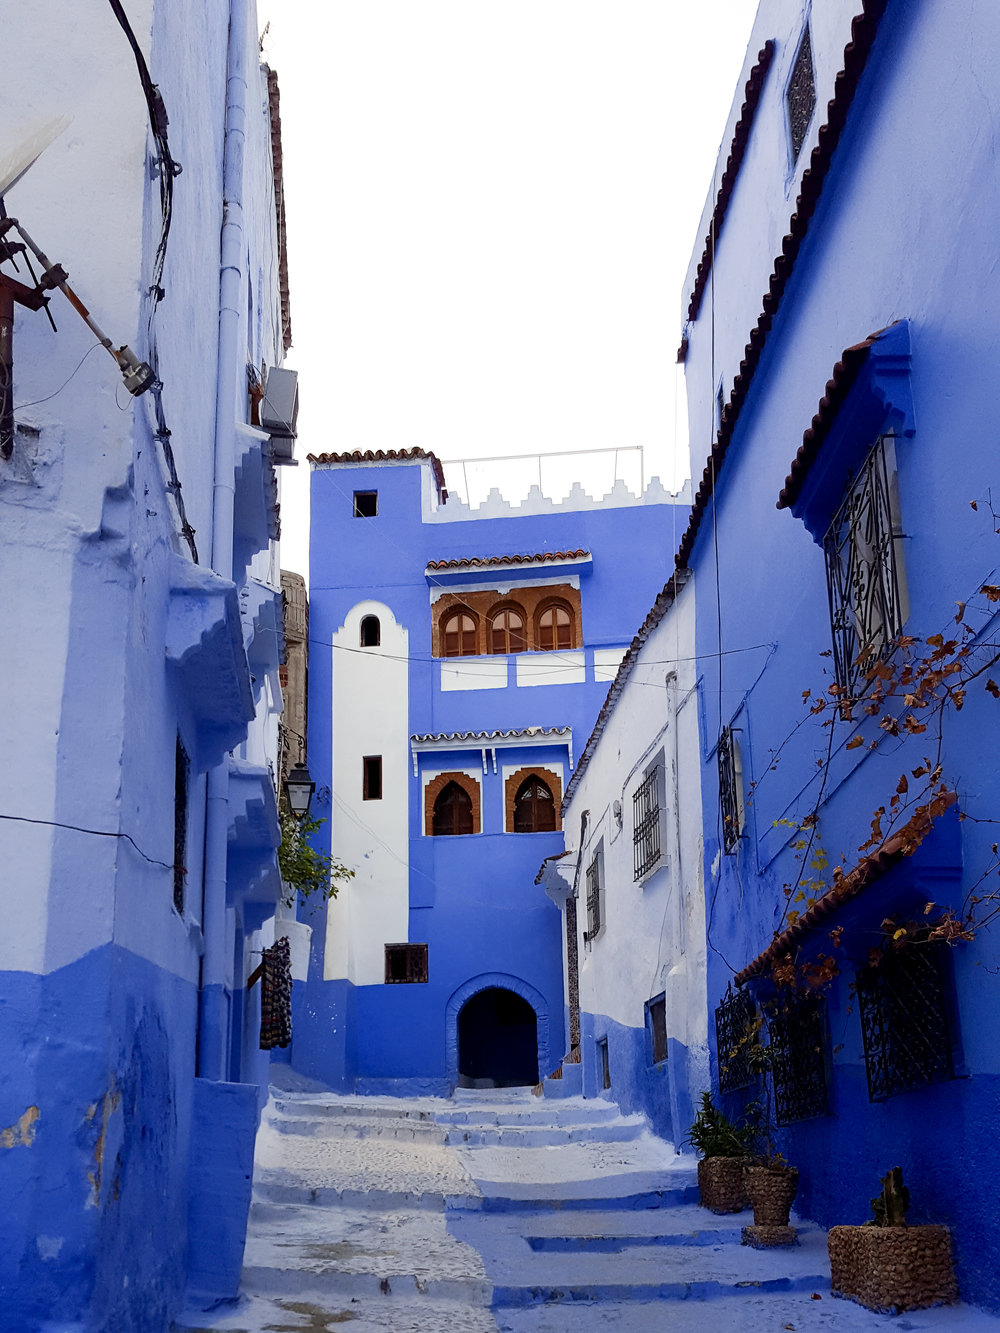 Chefchaouen is the famous blue city of Morocco